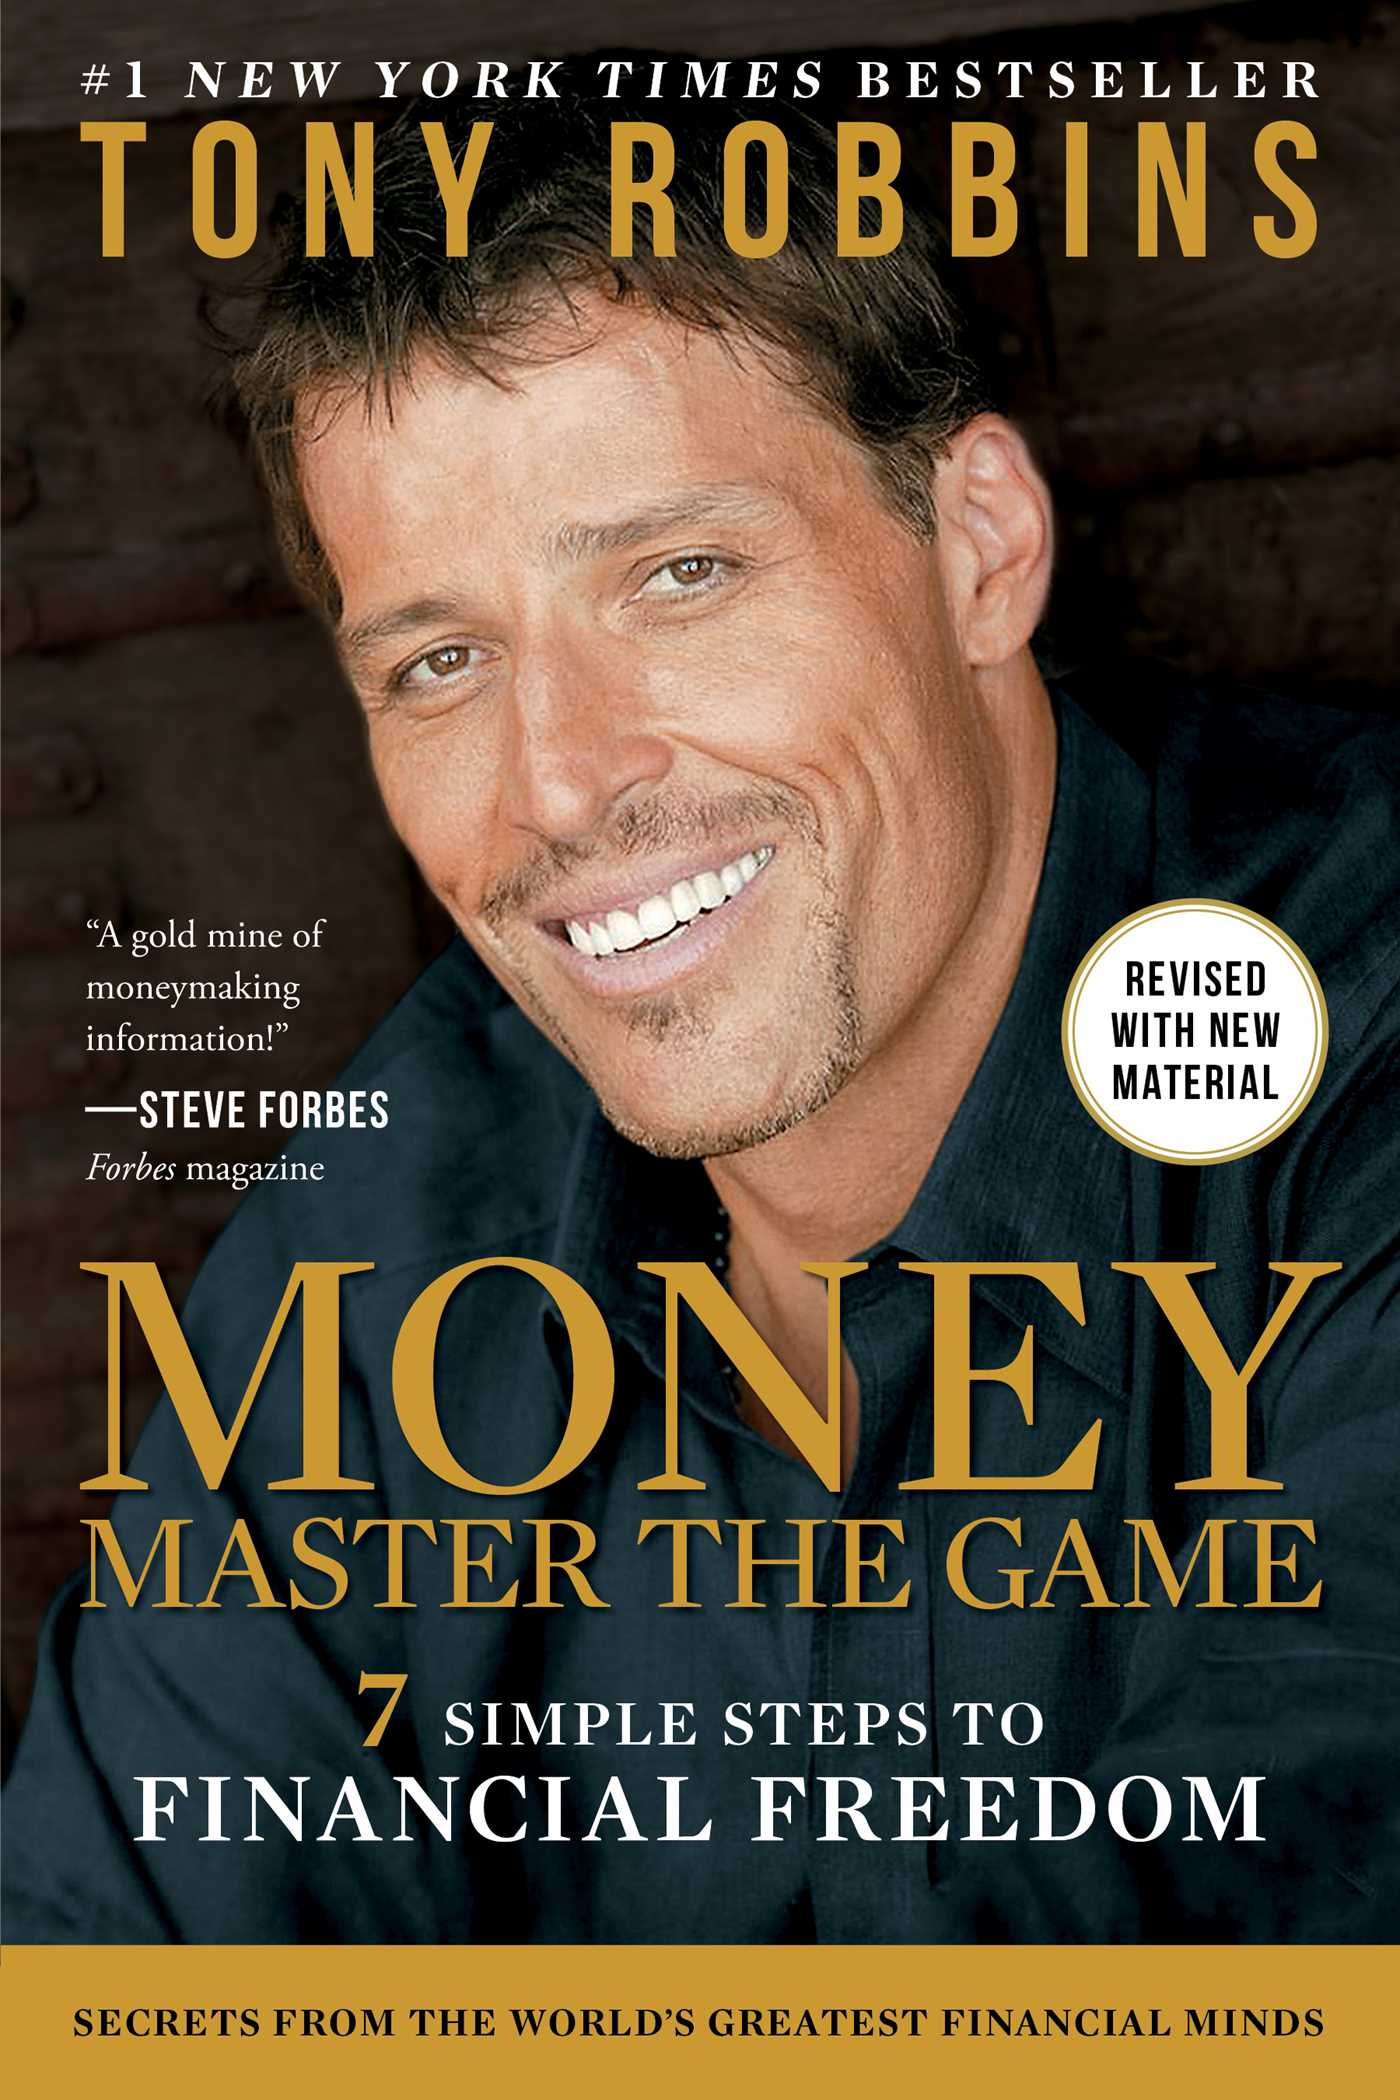 Book Cover Image (jpg): MONEY Master the Game